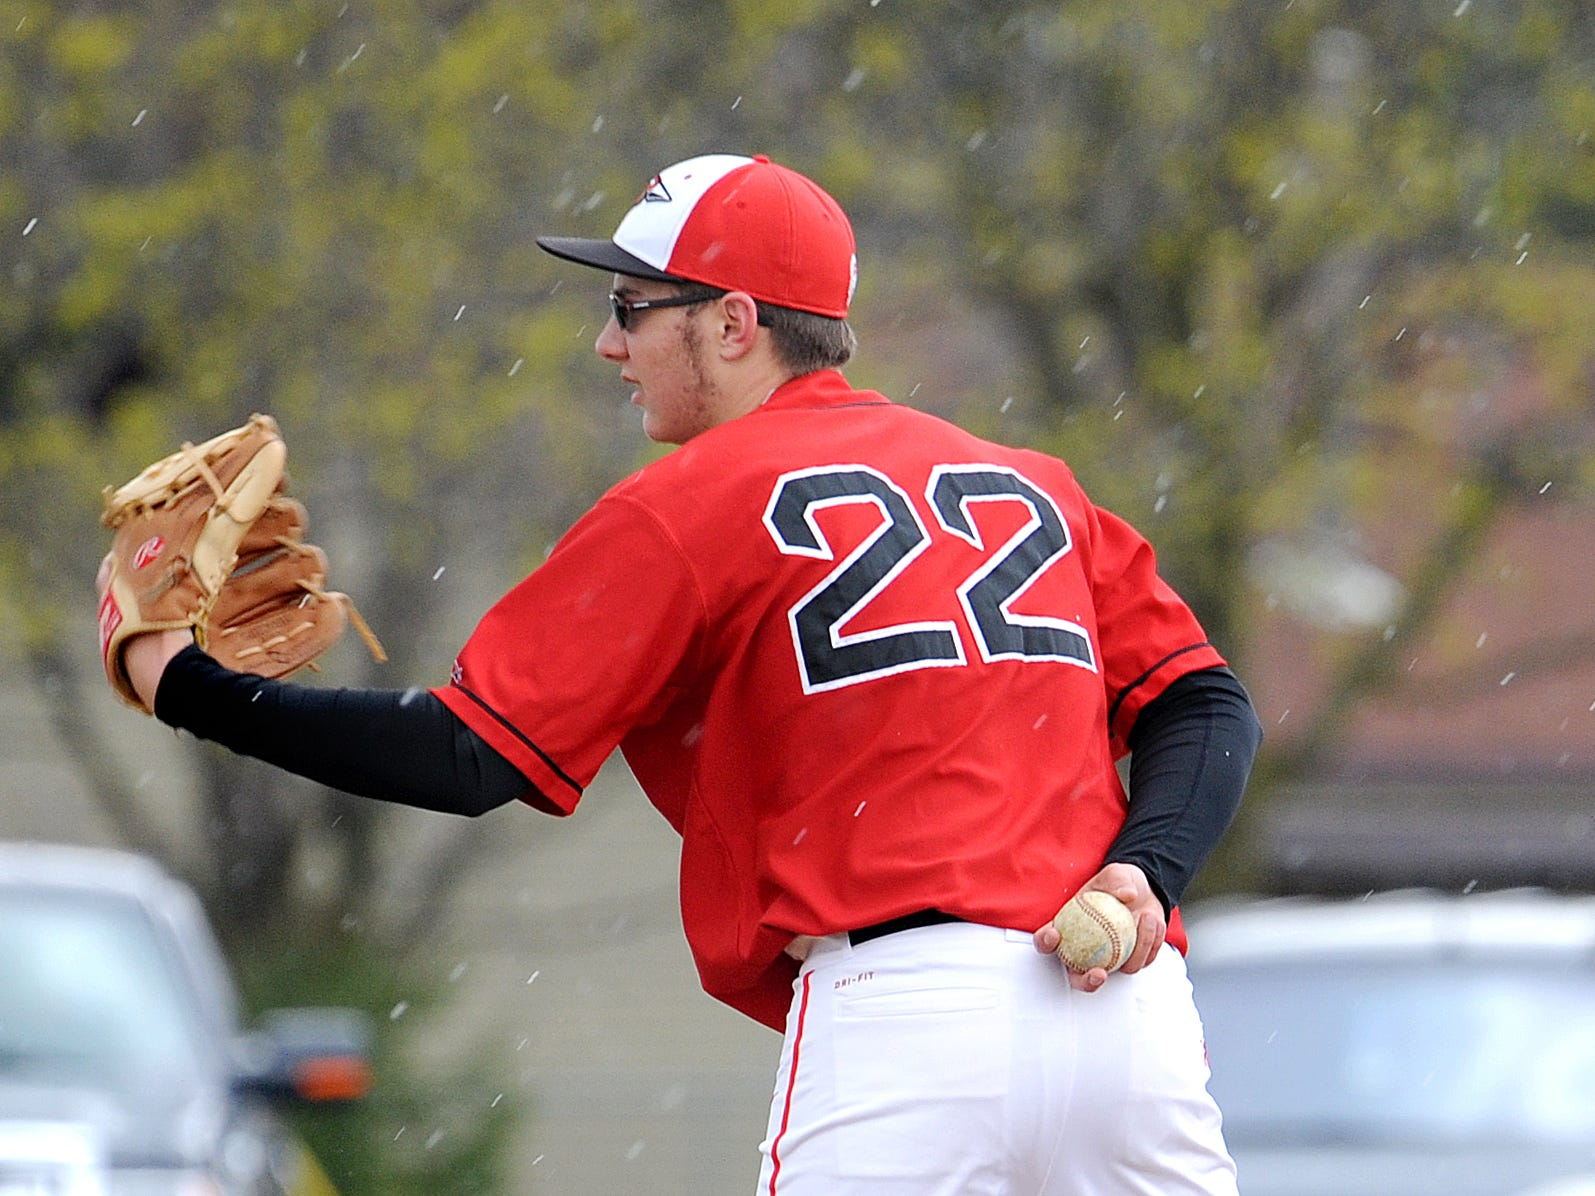 Bucyrus' Gavin Lewis prepares to throw another pitch during their game against Upper Sandusky as a snow/hail mixture falls from the sky Wednesday evening.